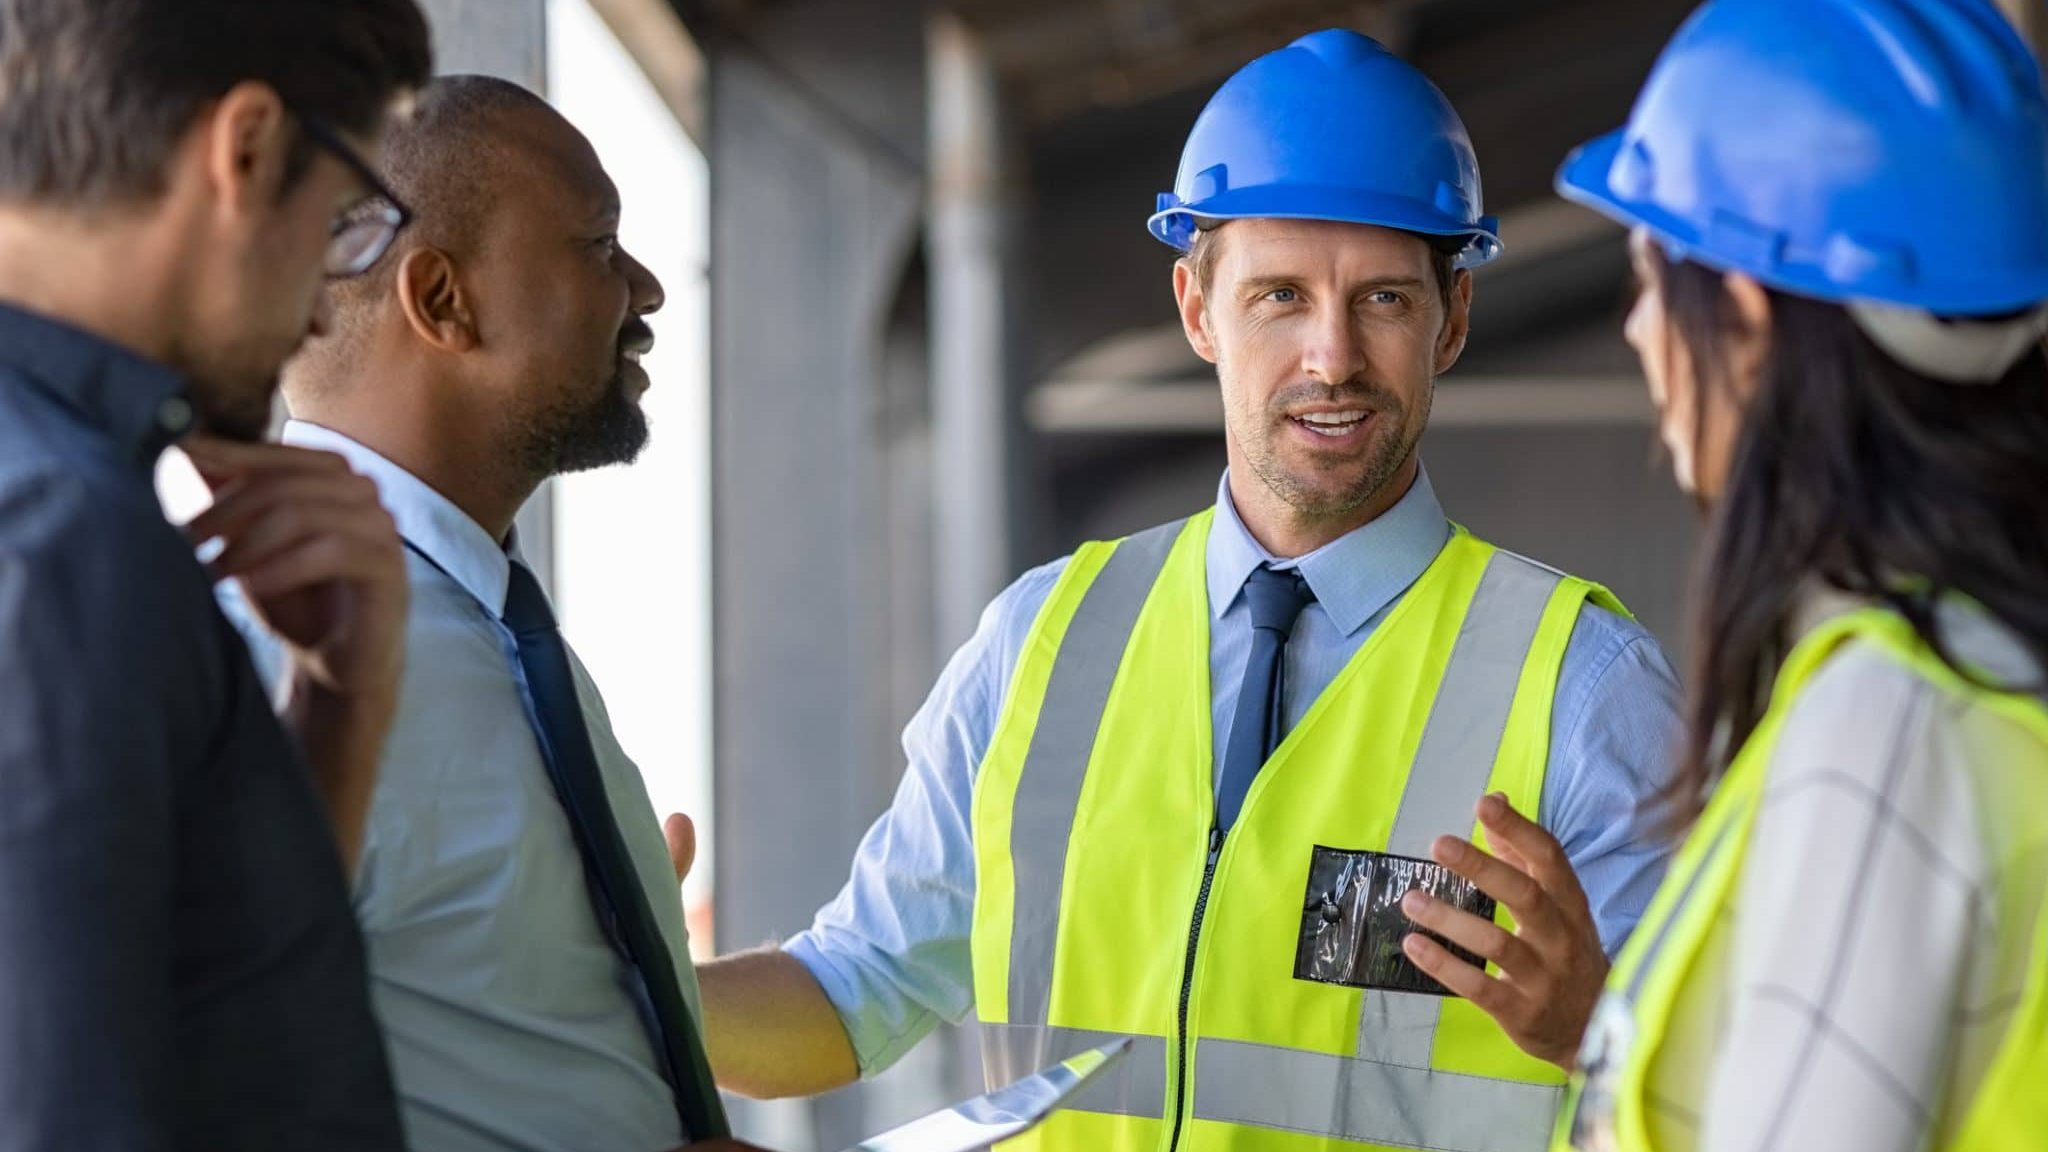 Employee and Labor Relations Specialists